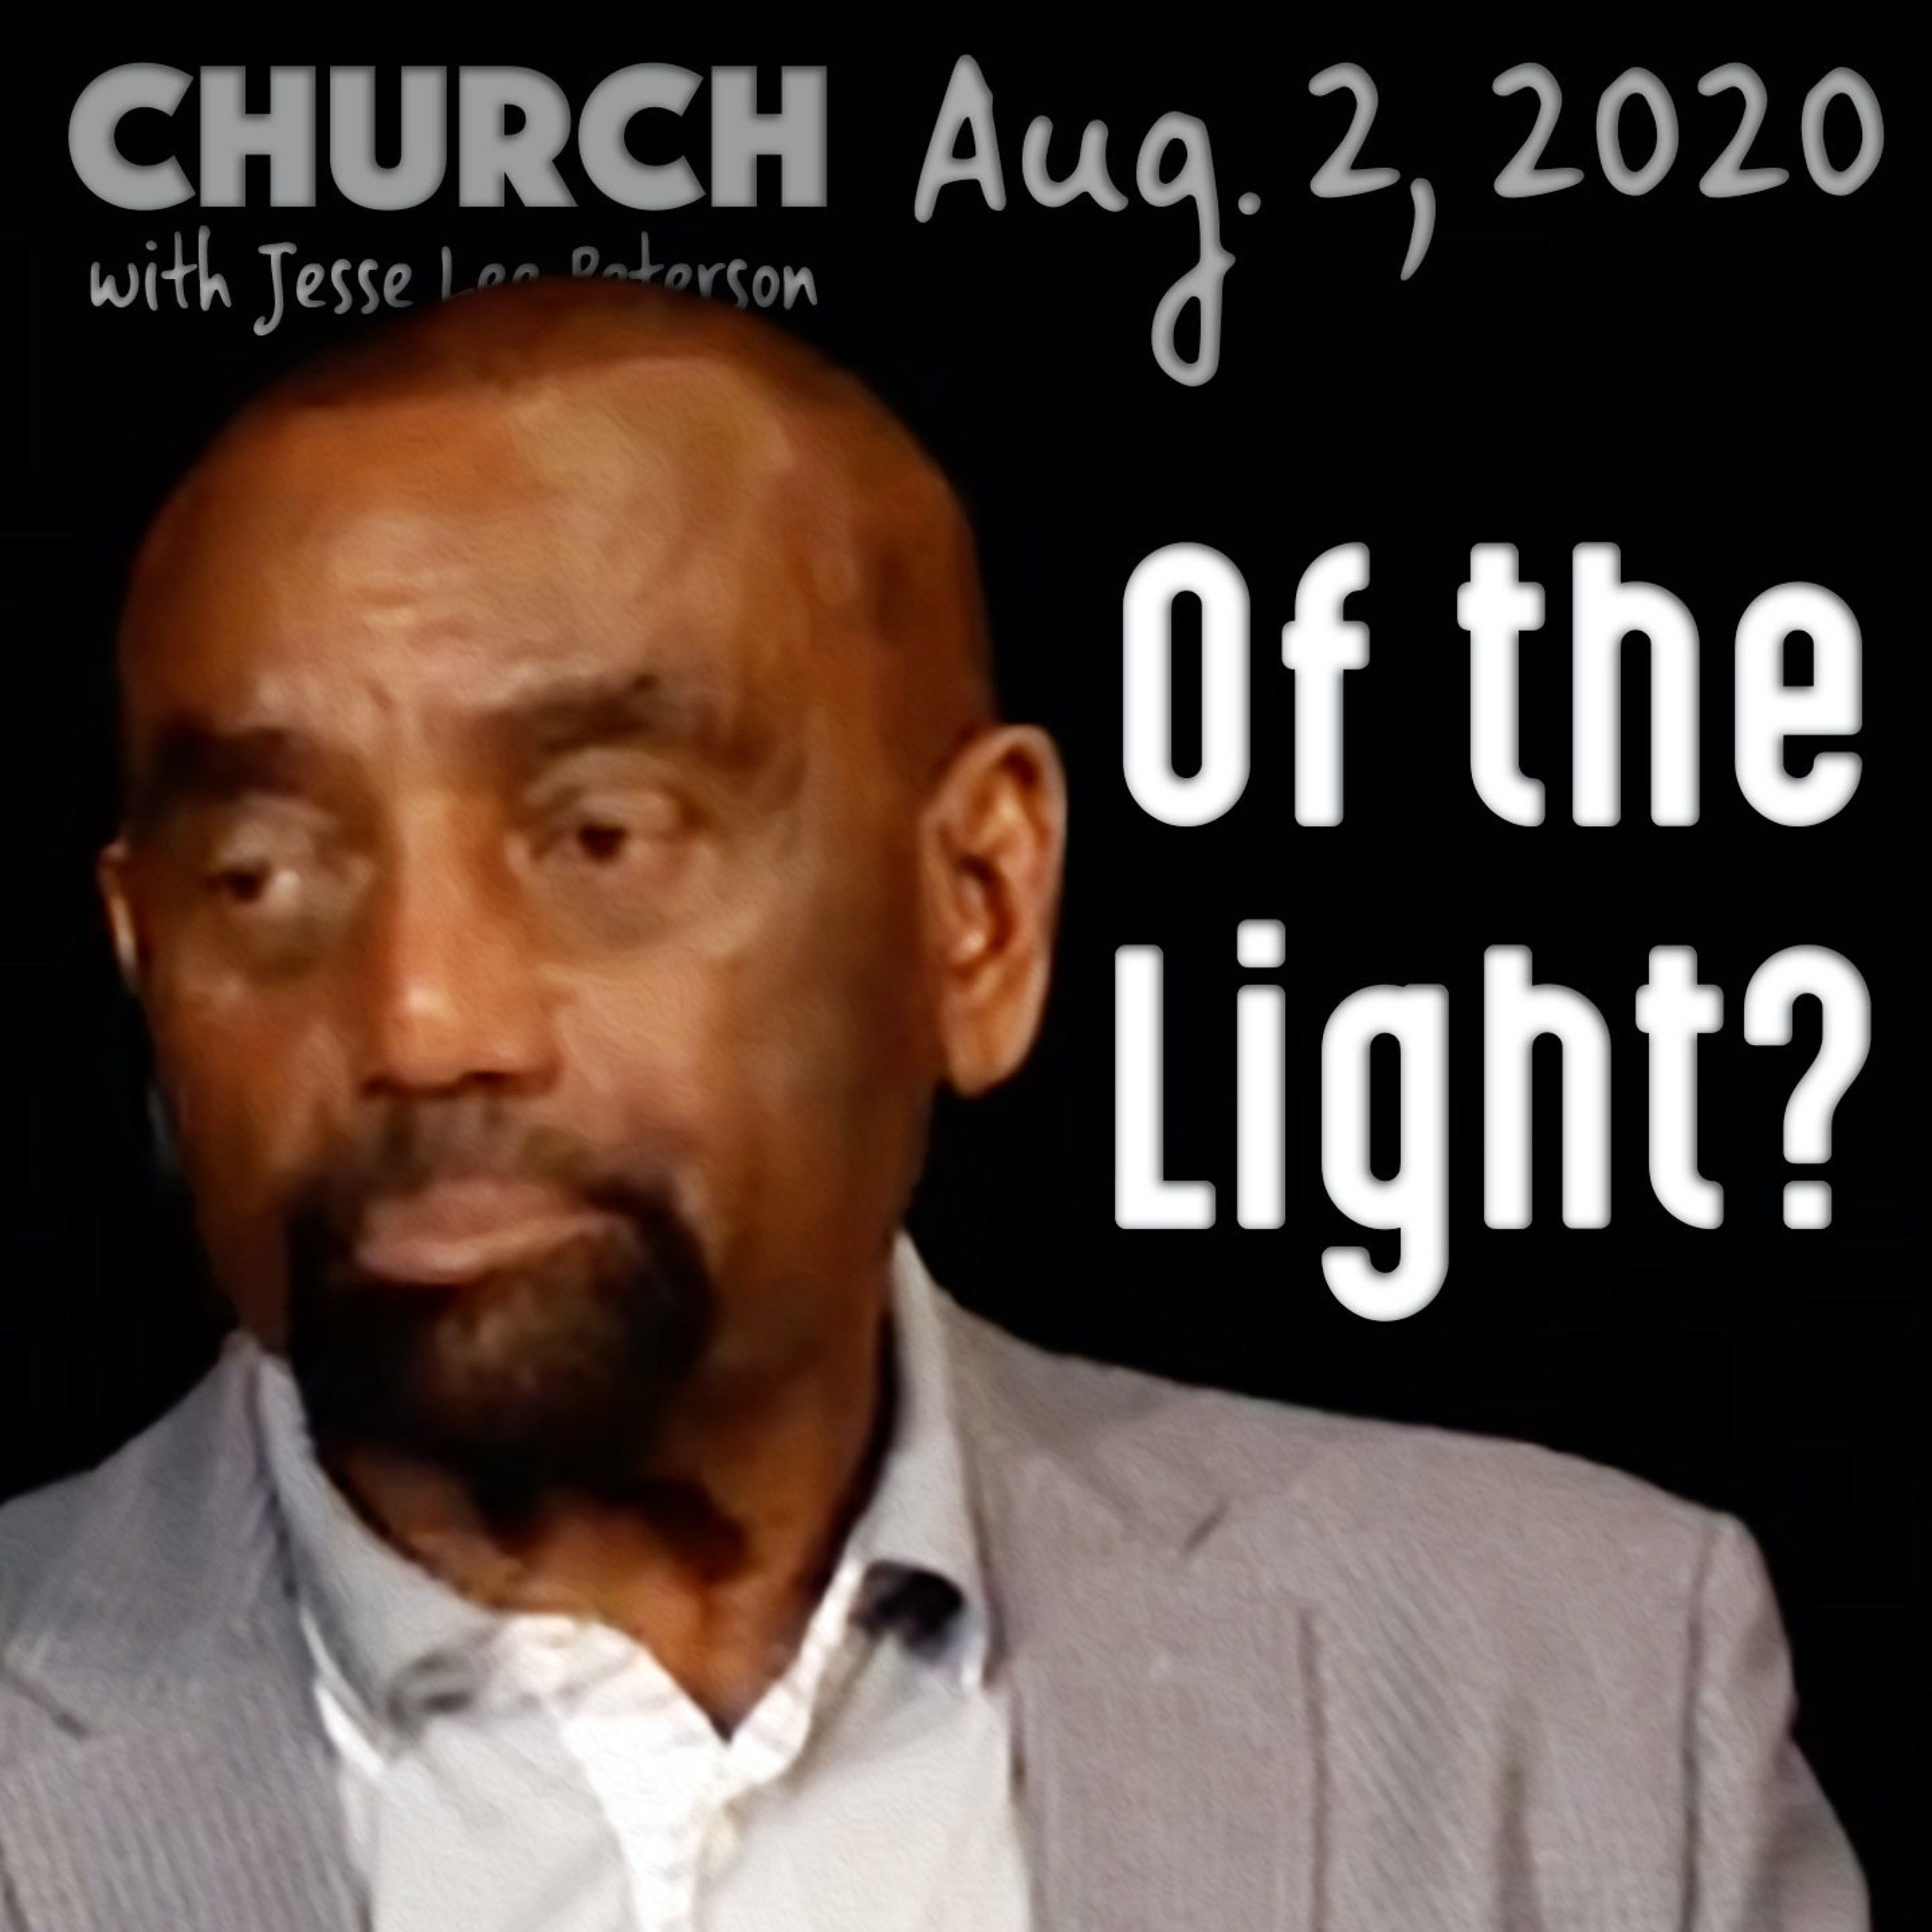 08/02/20 What Does It Mean to Be of the Light? (Church)